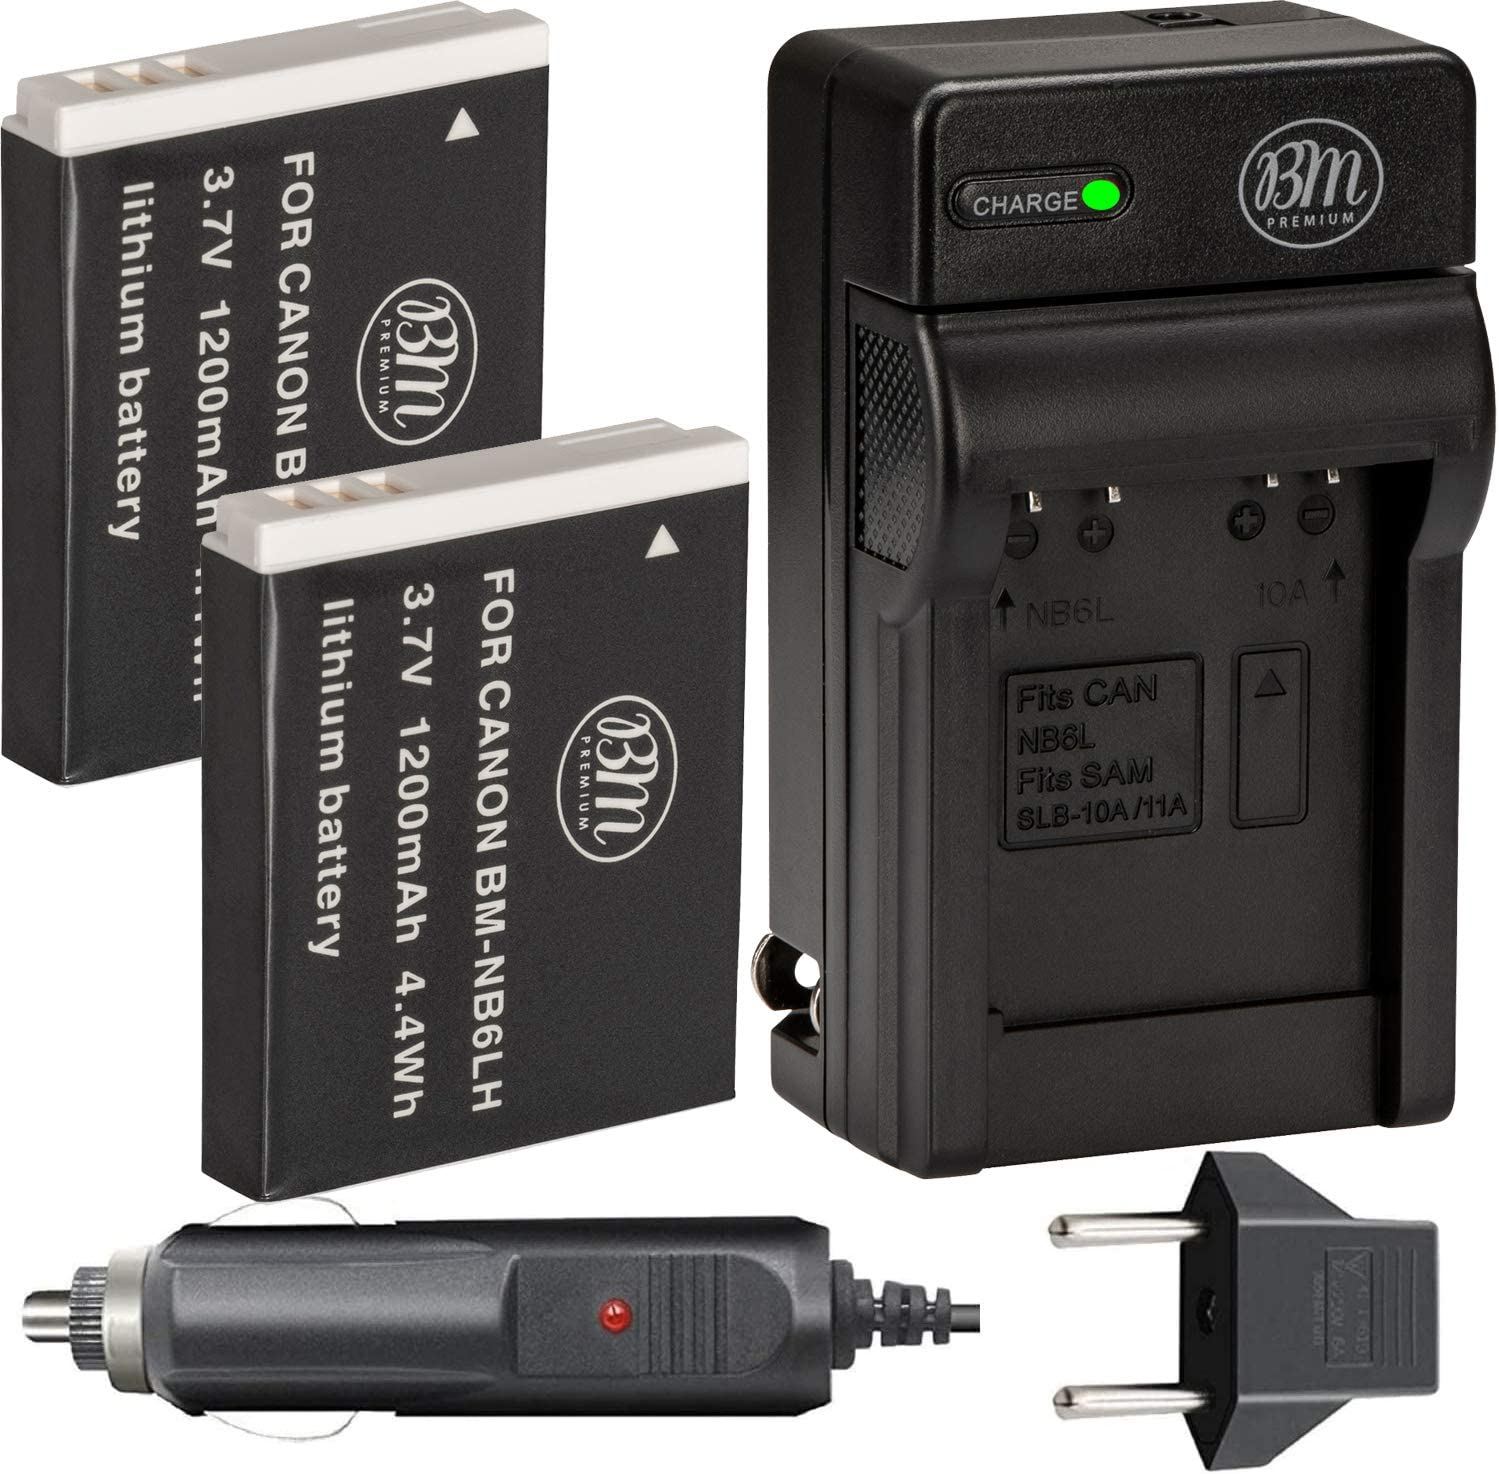 Limited time sale BM Arlington Mall Premium Pack of 2 NB6L K NB-6LH Charger NB-6L And Batteries